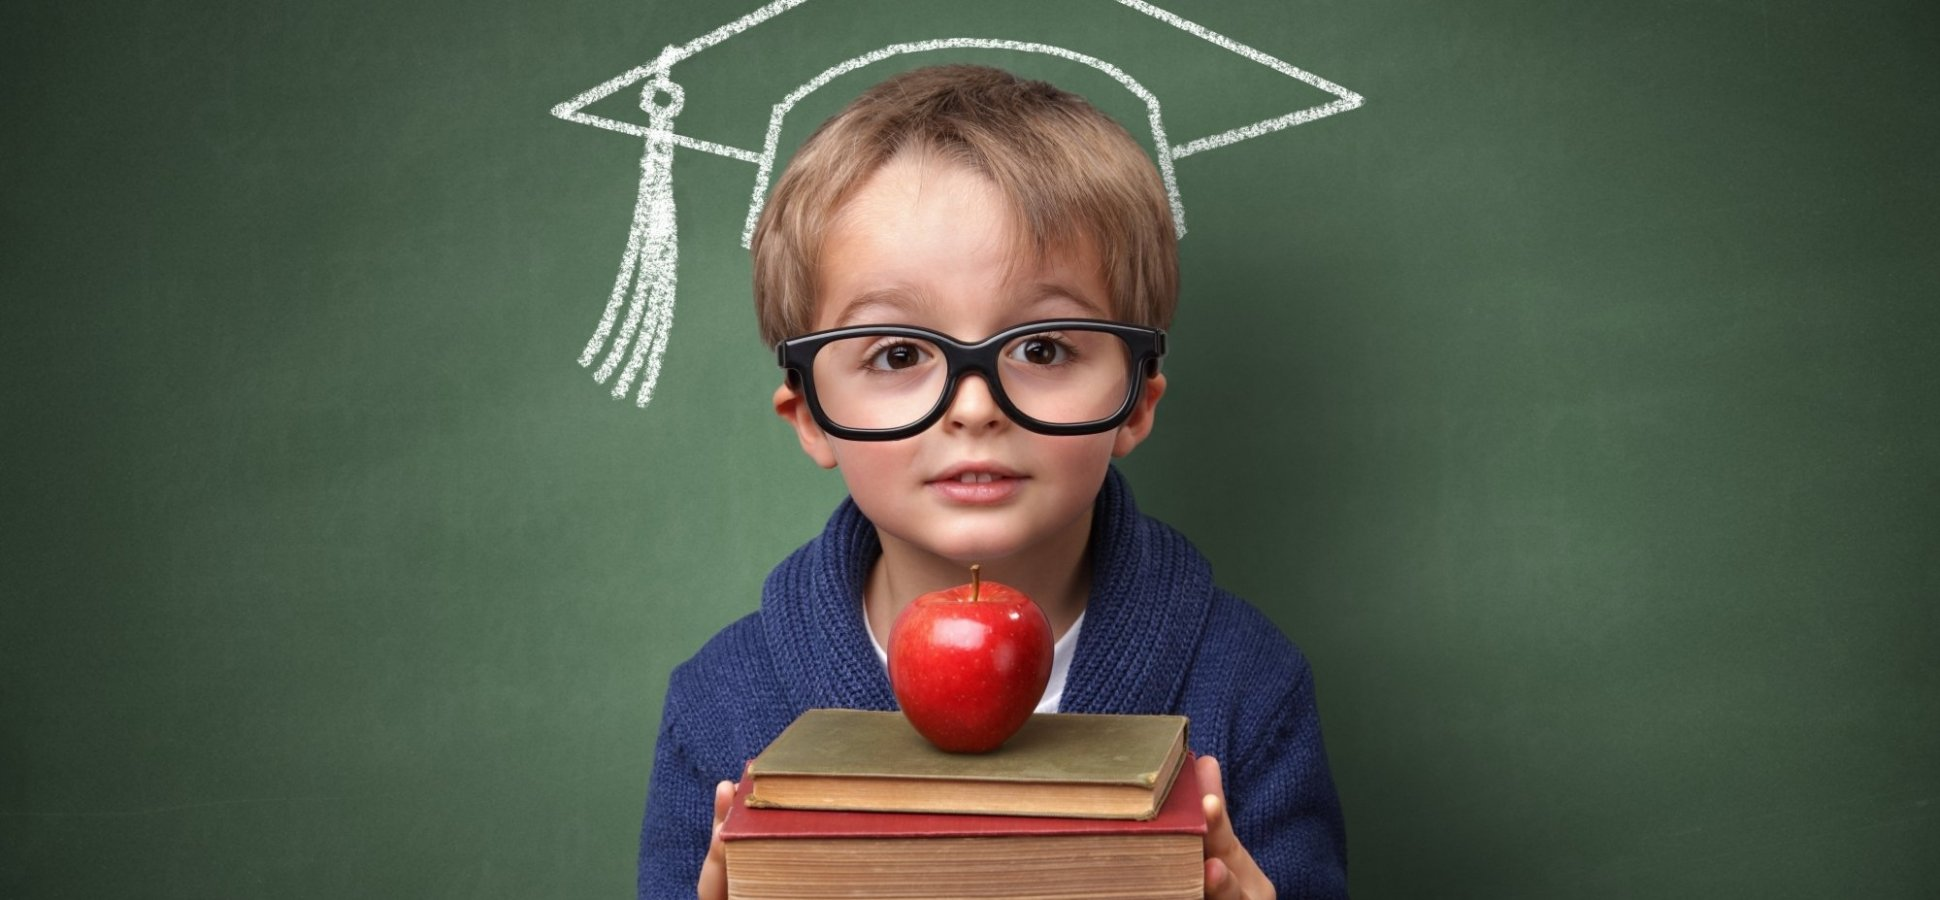 Science: If You Want Your Kids to Succeed, Teach Them These Skills